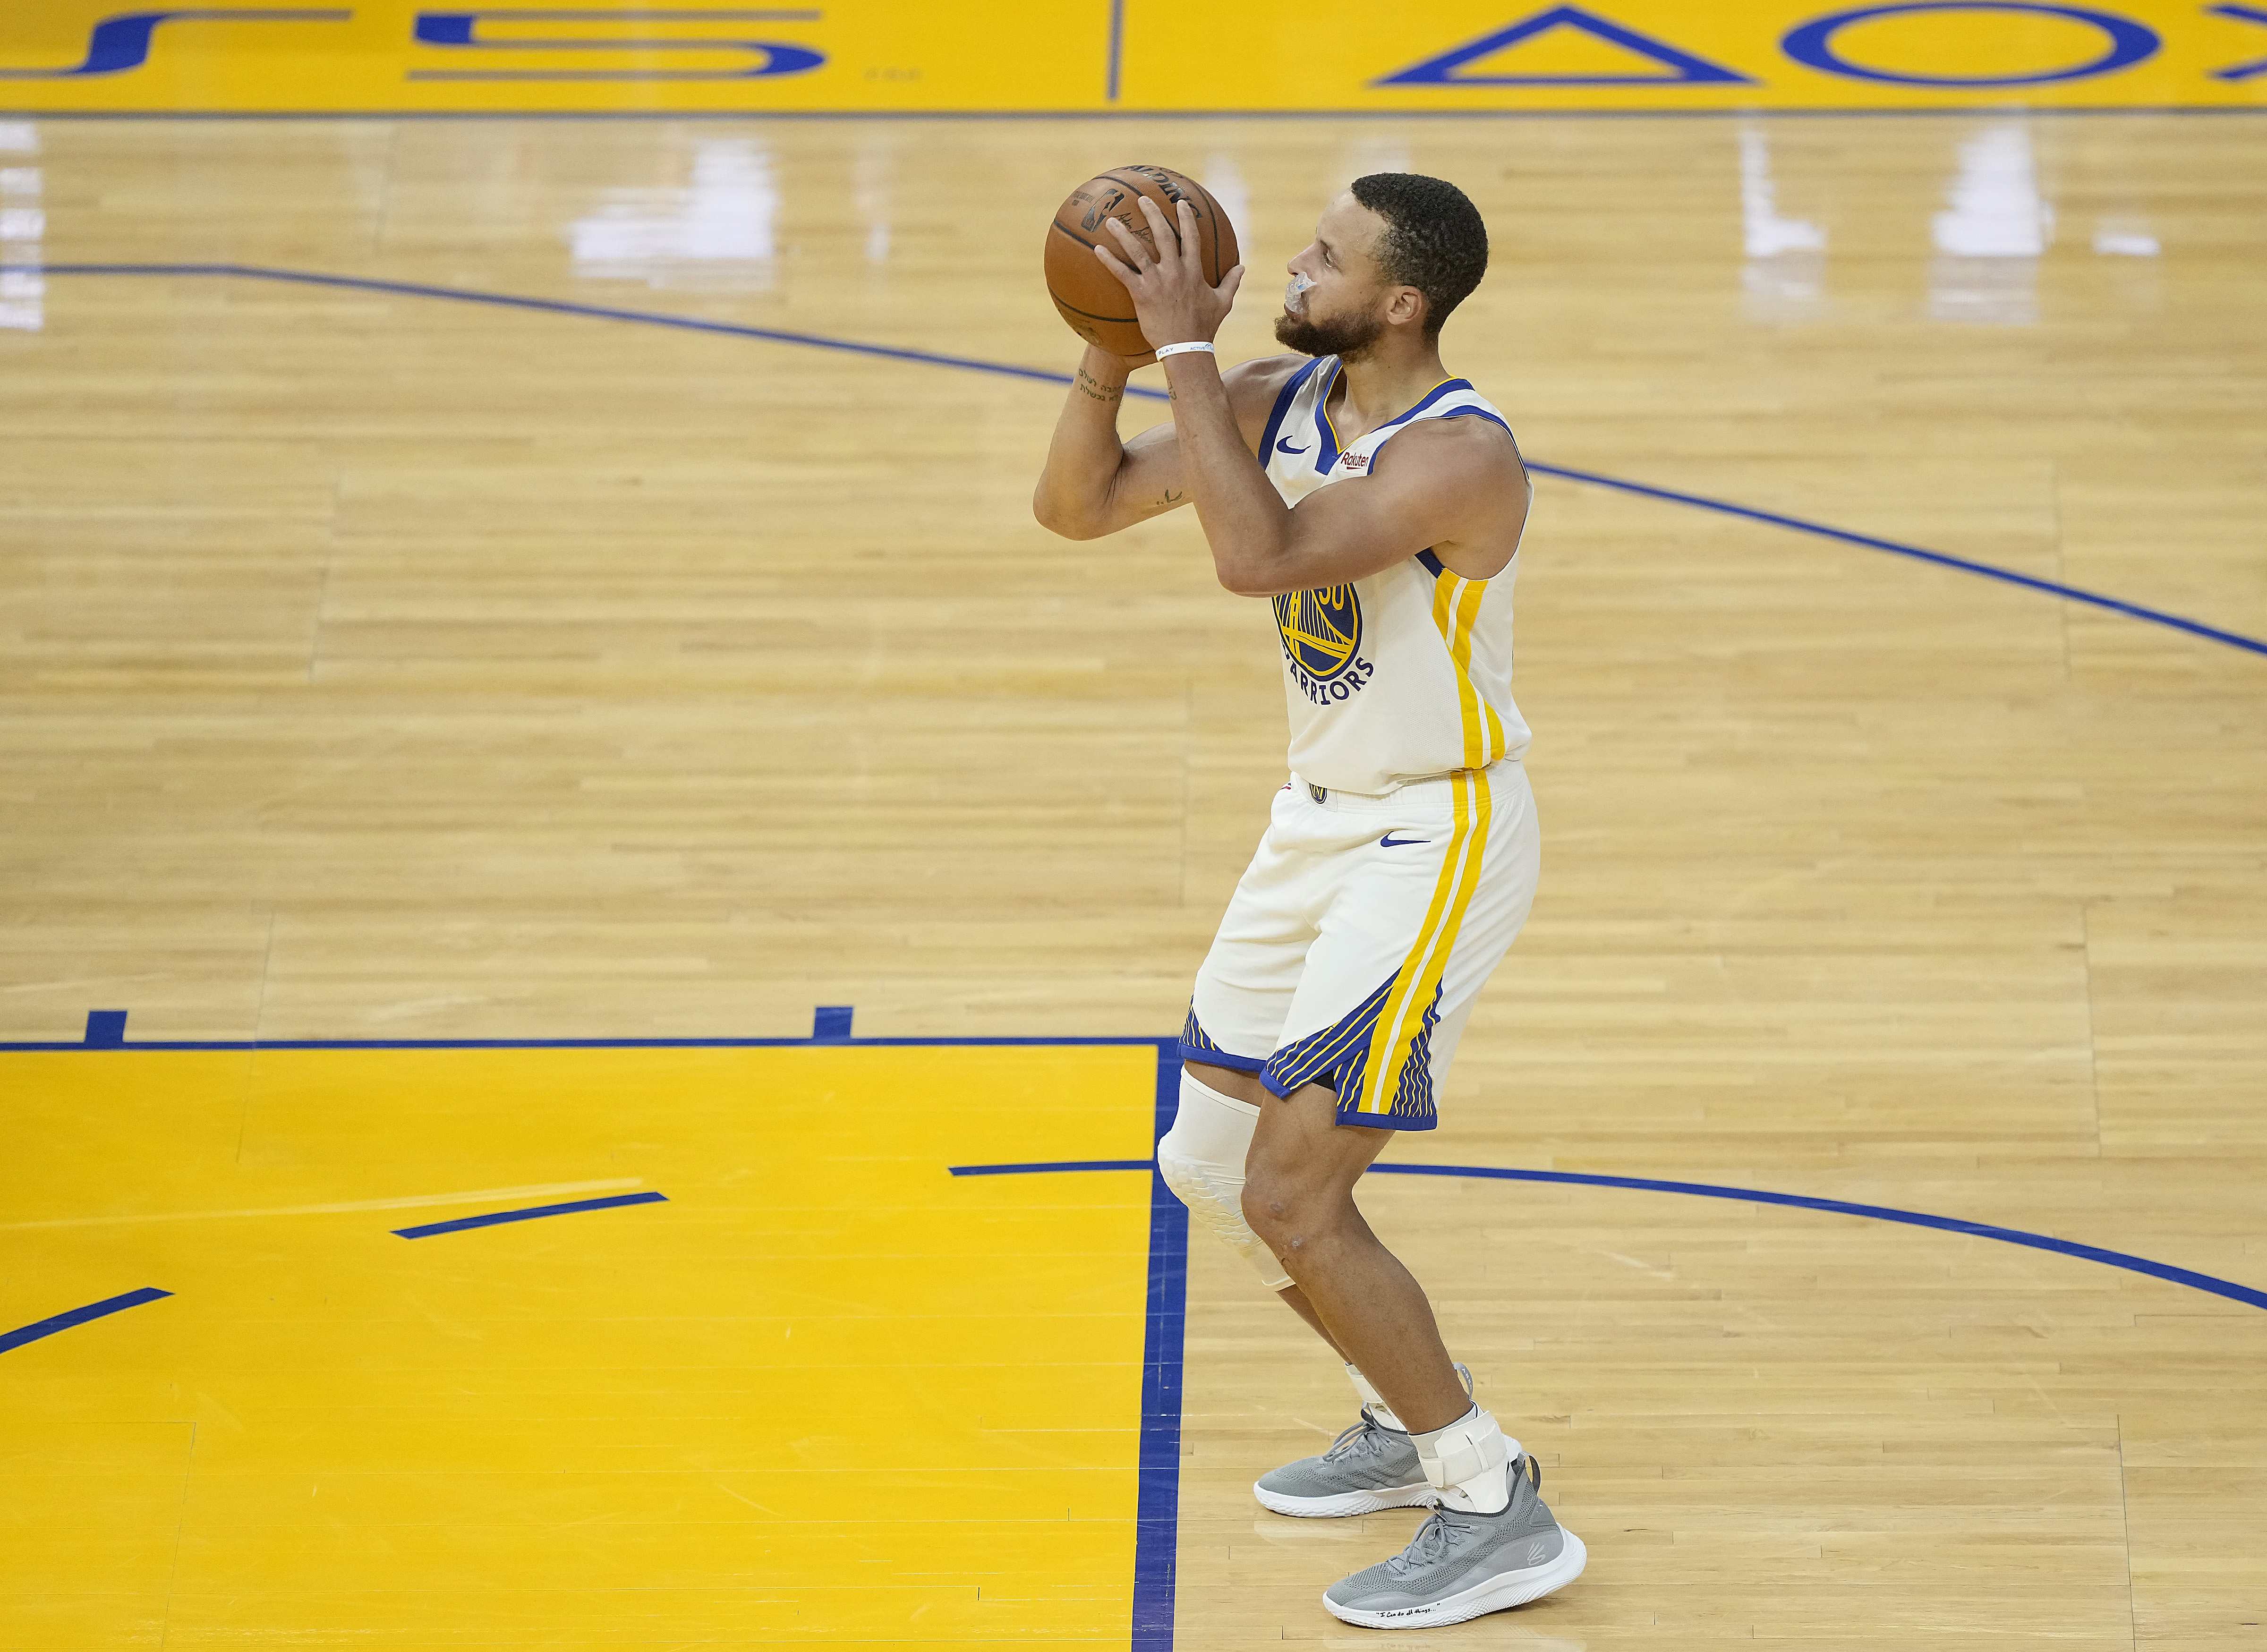 Stephen Curry #30 of the Golden State Warriors stands at the line to shoot a foul shot against the Memphis Grizzlies during the second half of an NBA basketball game at Chase Center on May 16, 2021 in San Francisco, California.. ,